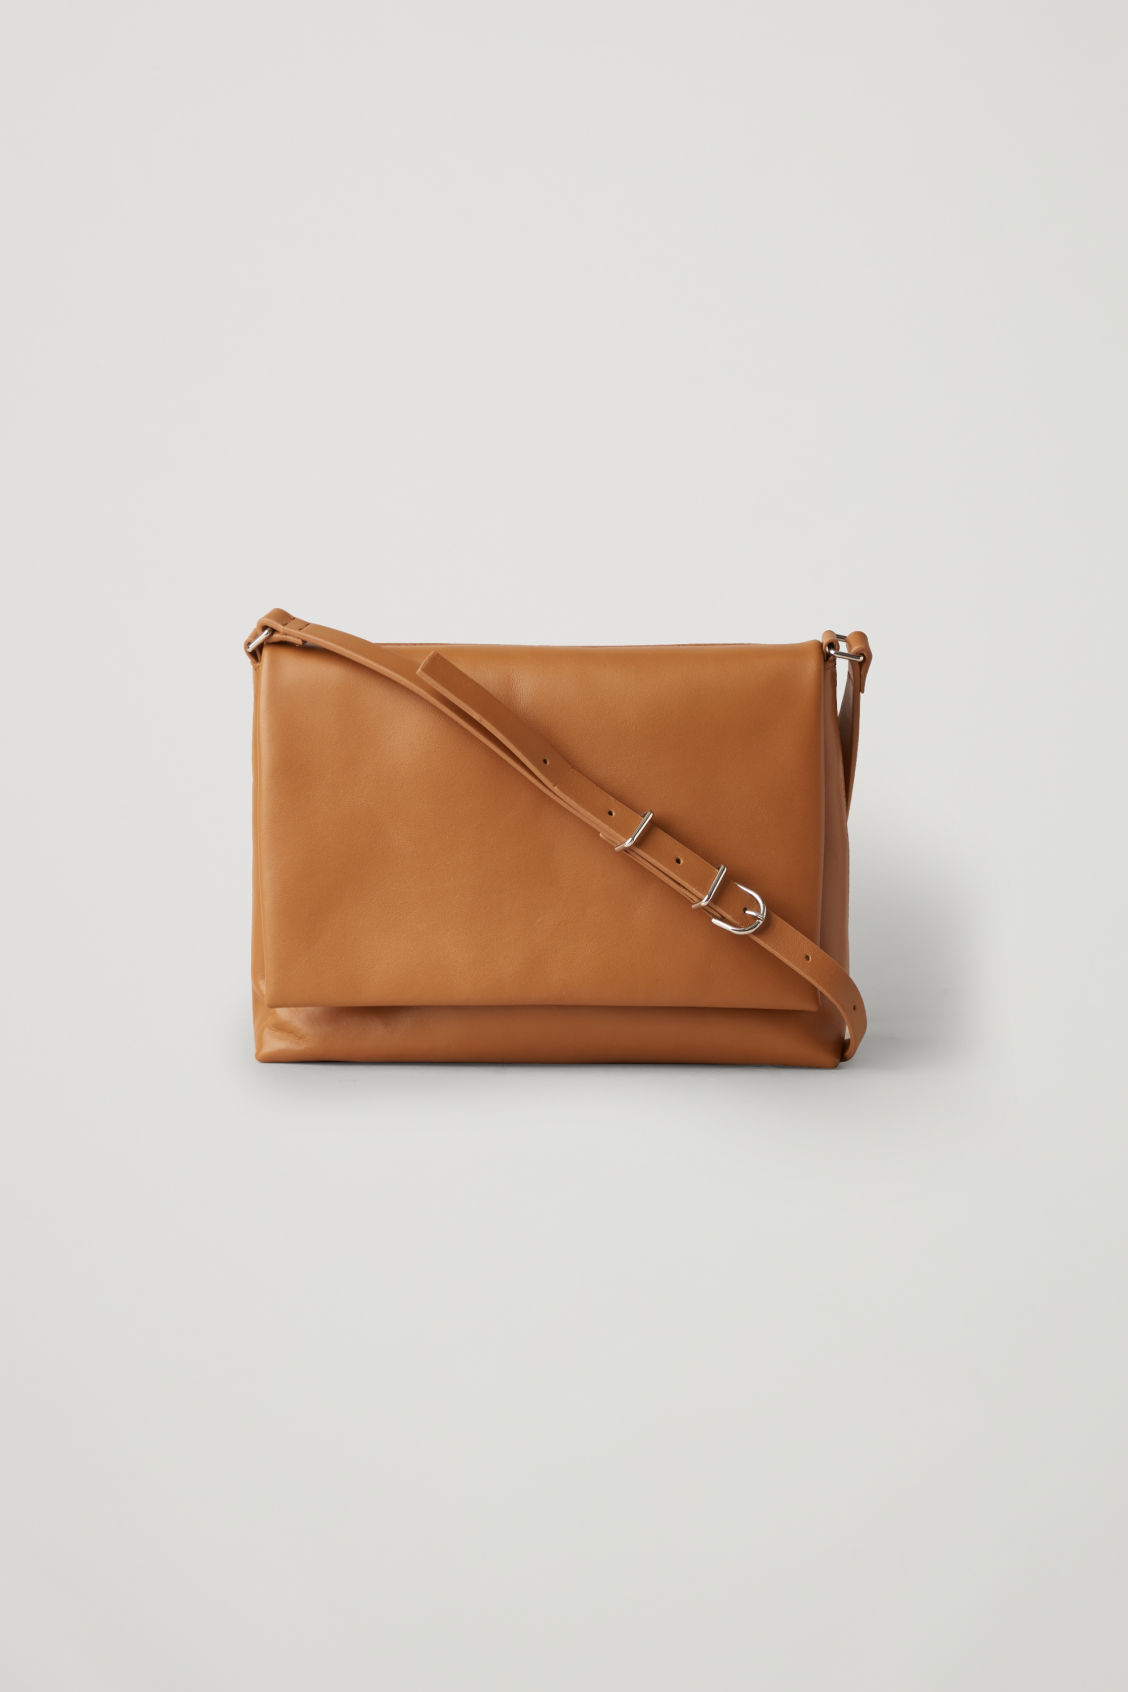 Cos Small Soft-leather Shoulder Bag In Beige